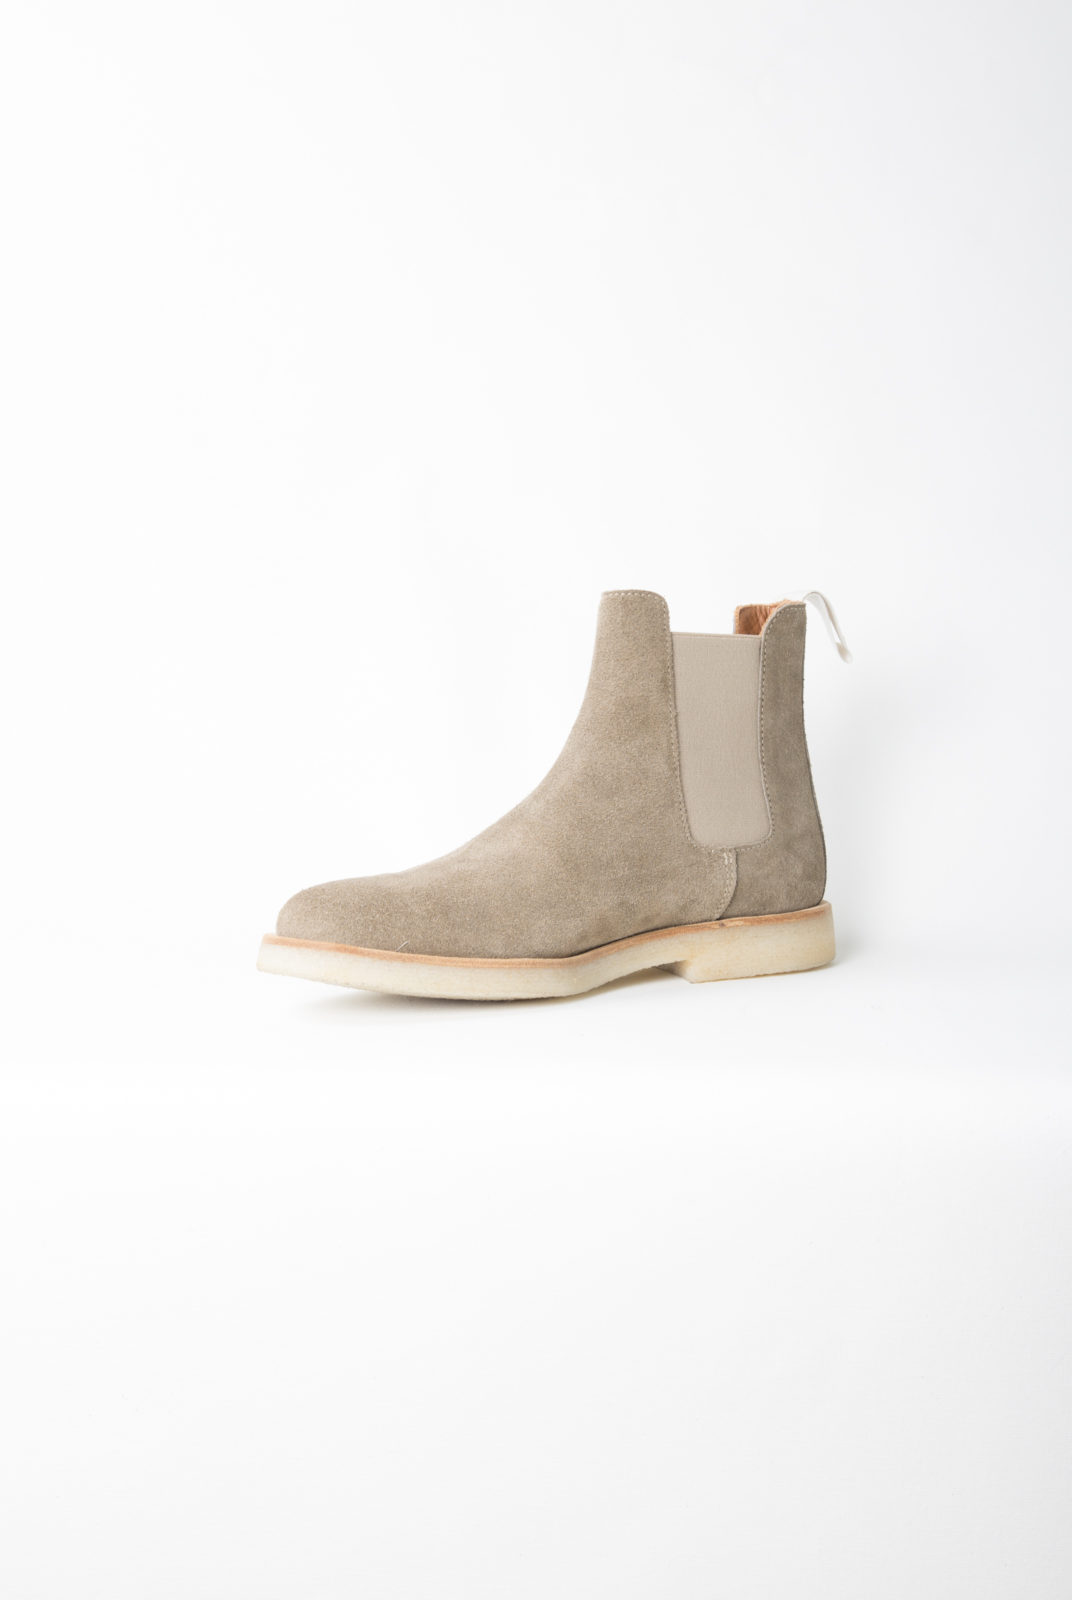 chelsea boots, tan, daim, semelle caoutchouc, signature doré, common projects